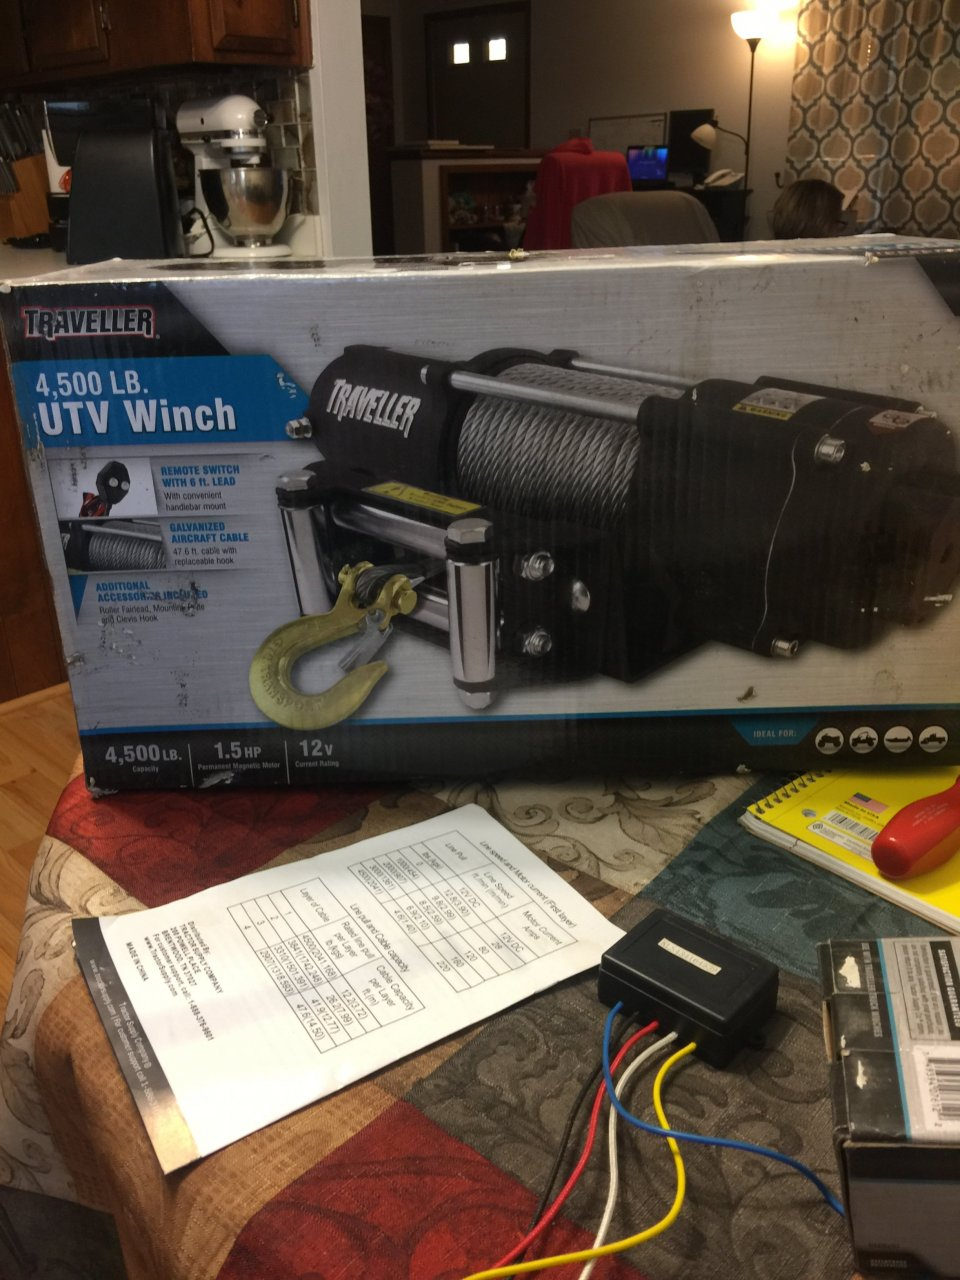 i have a traveller 4500 lb winch model   1078311 and need